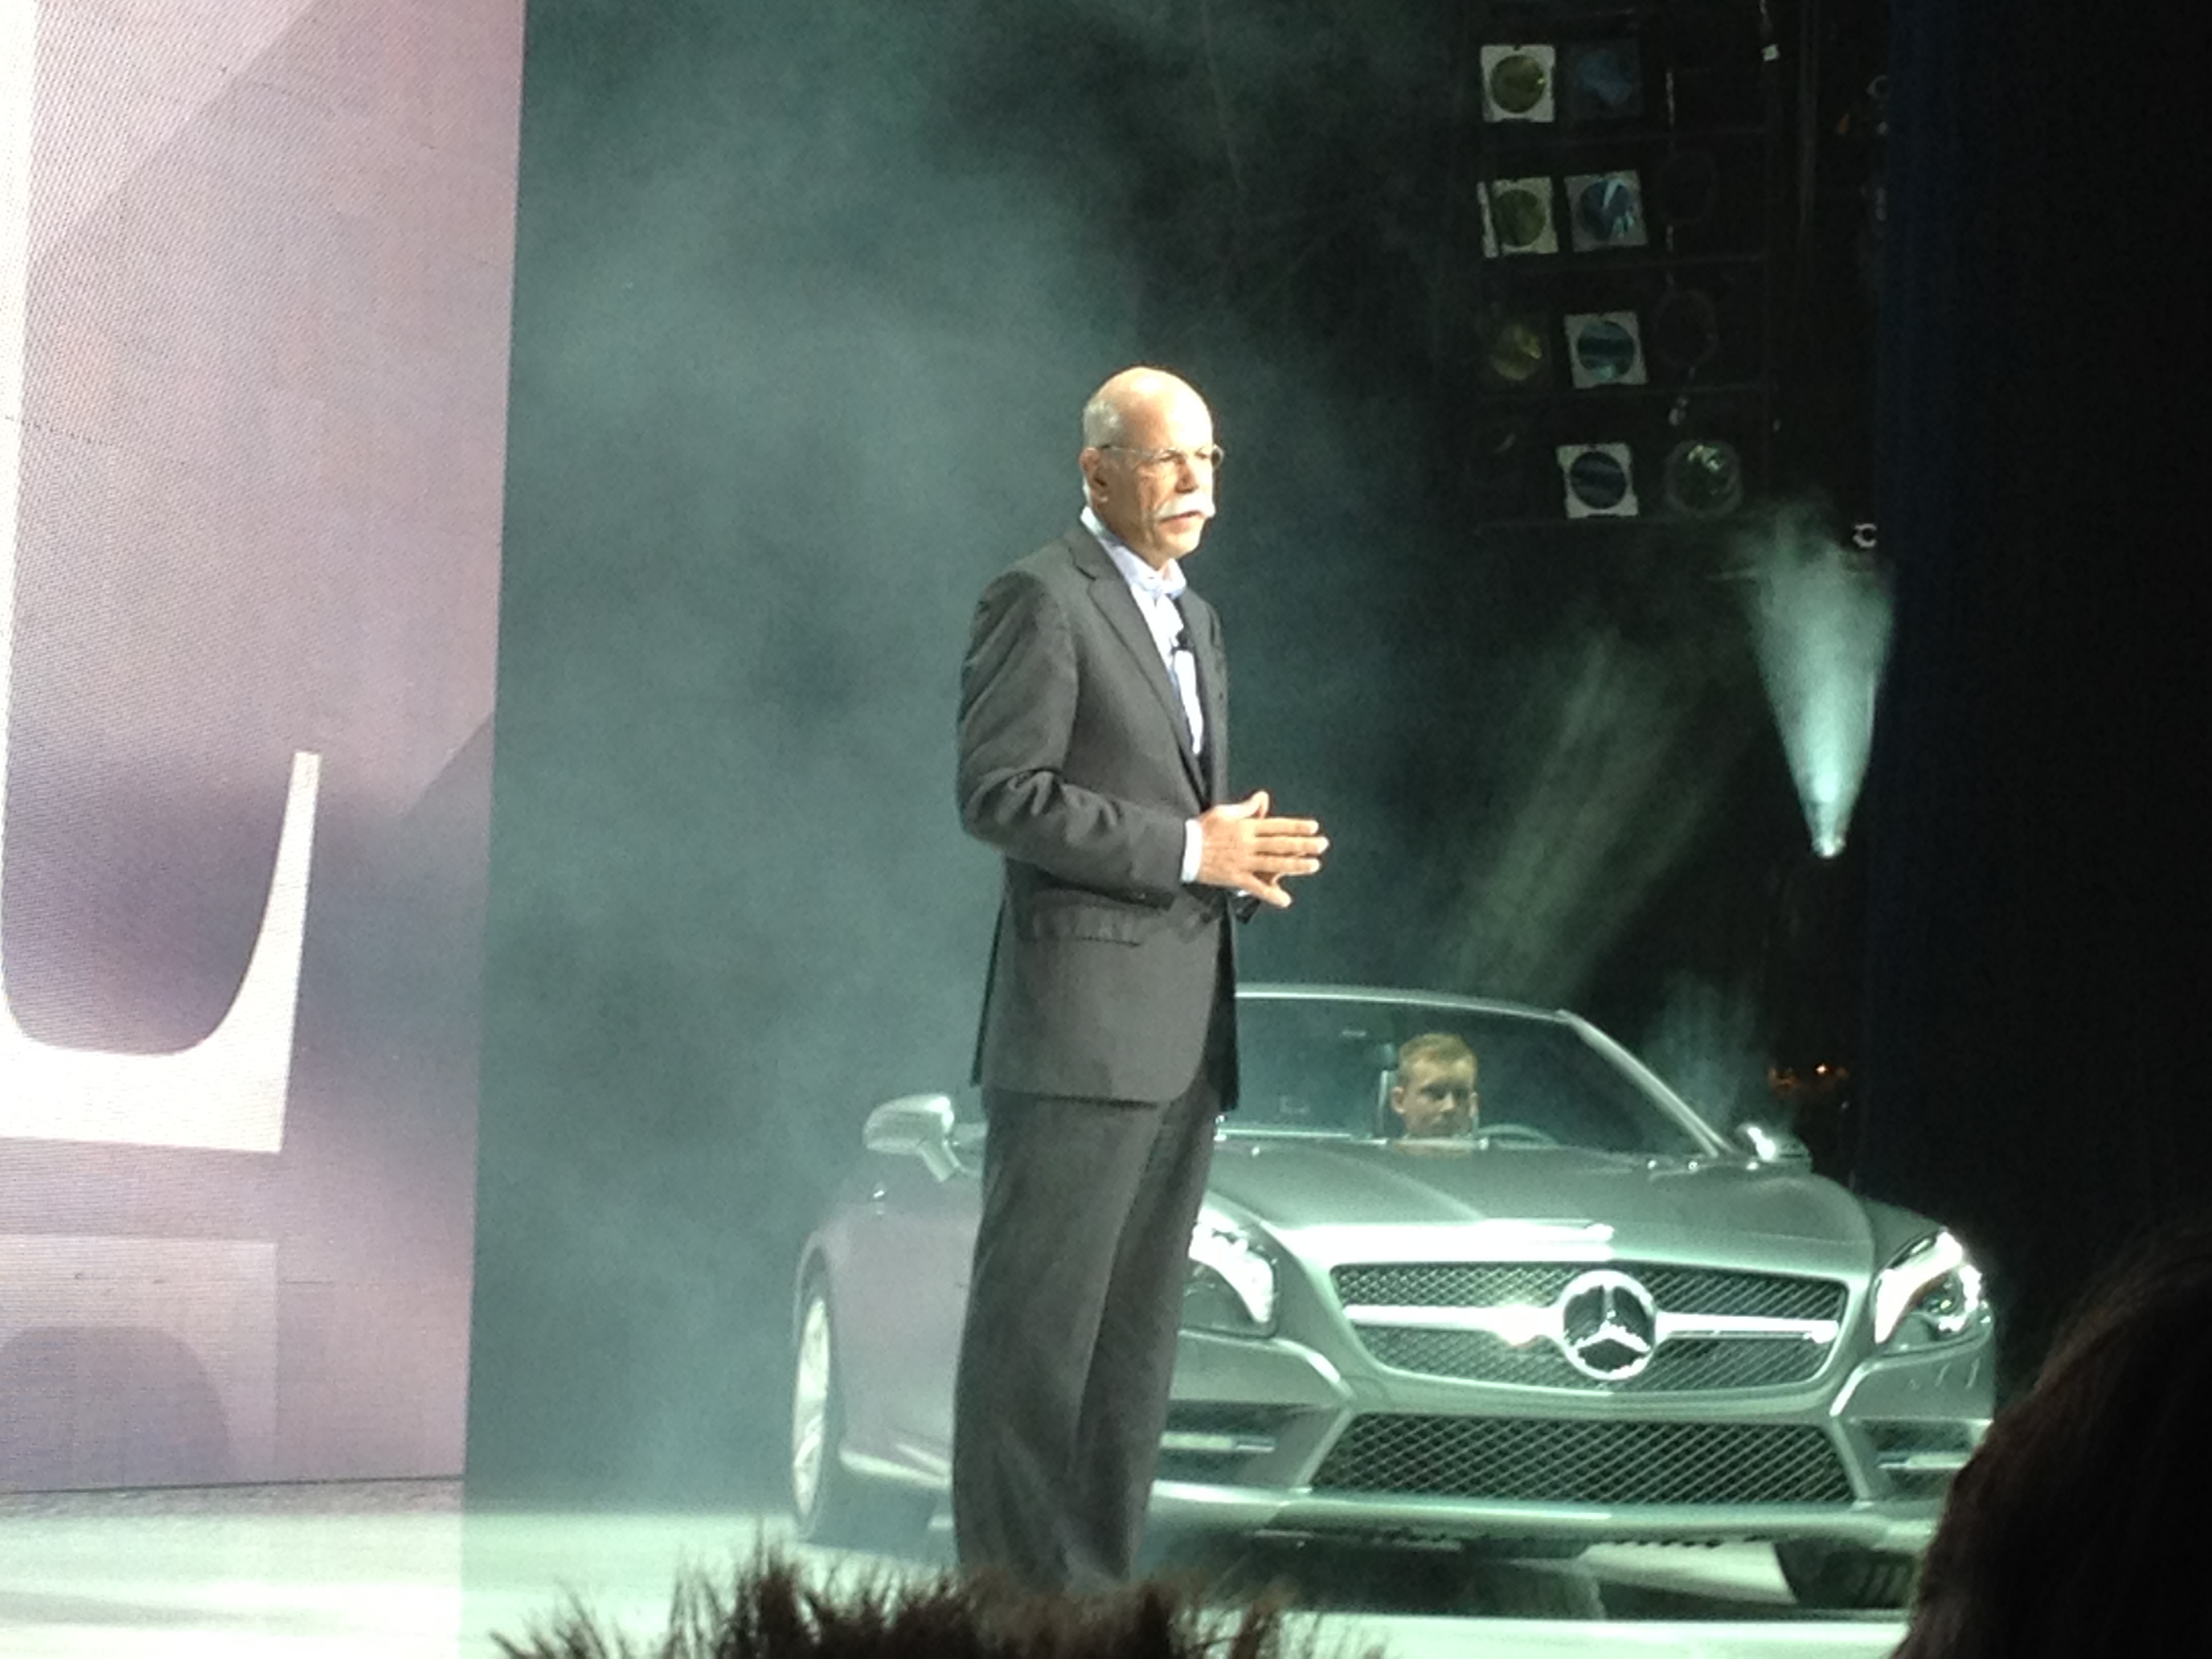 Head of Mercedes-Benz to Give Keynote at CES